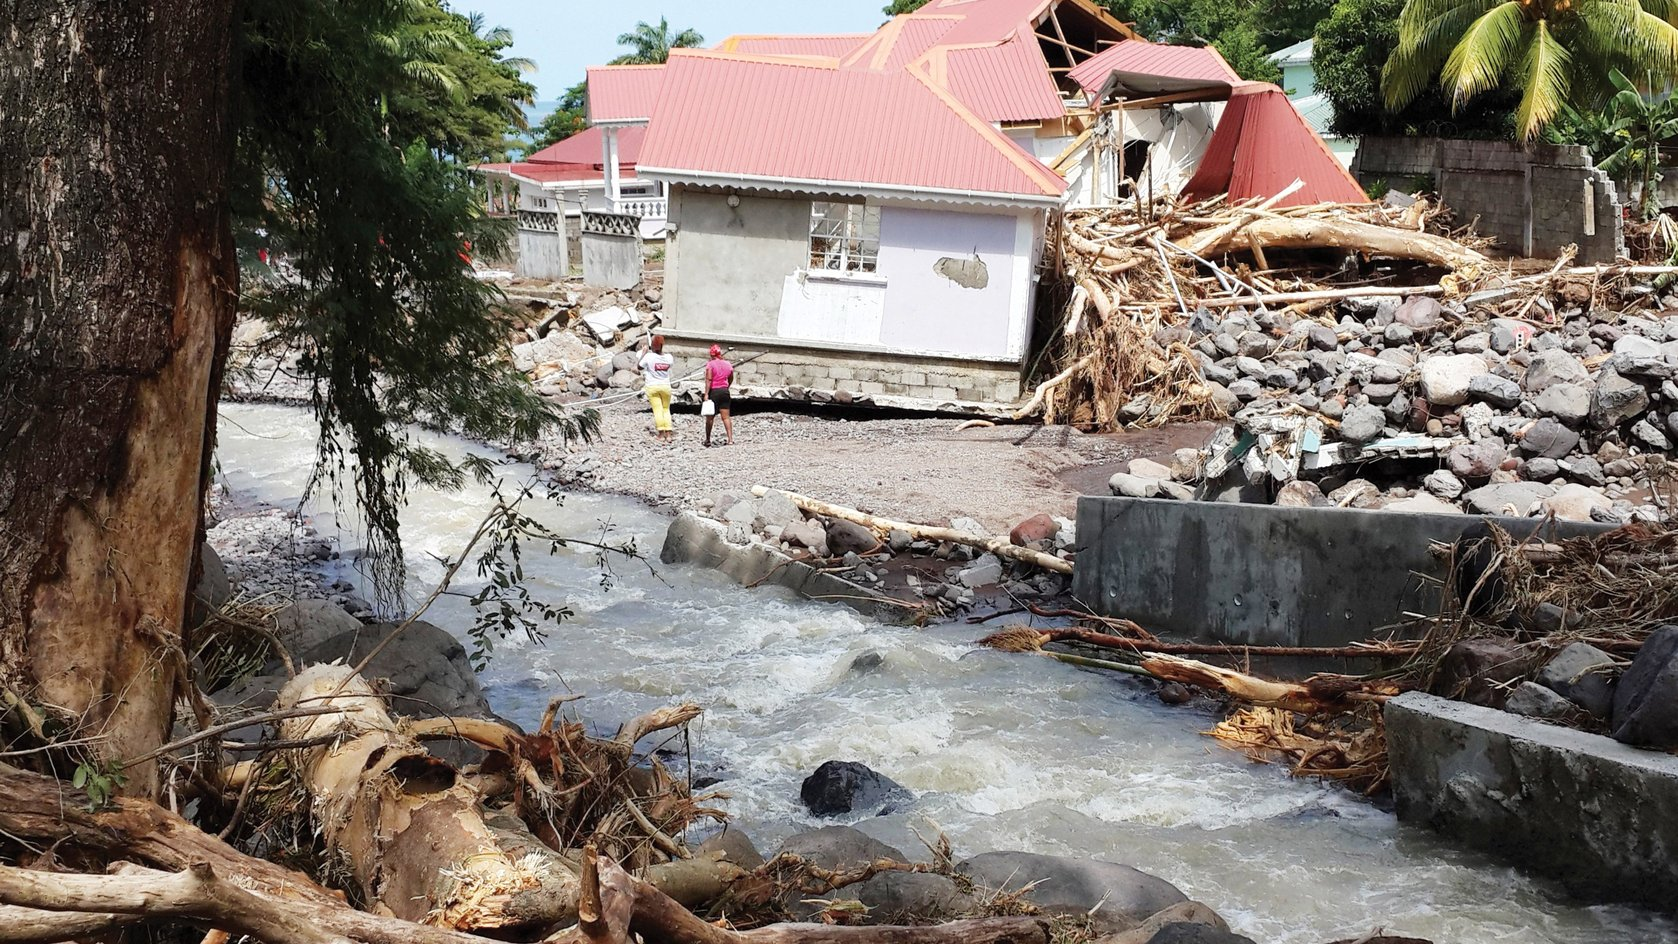 Effects of Tropical Storm Erika at Massacre